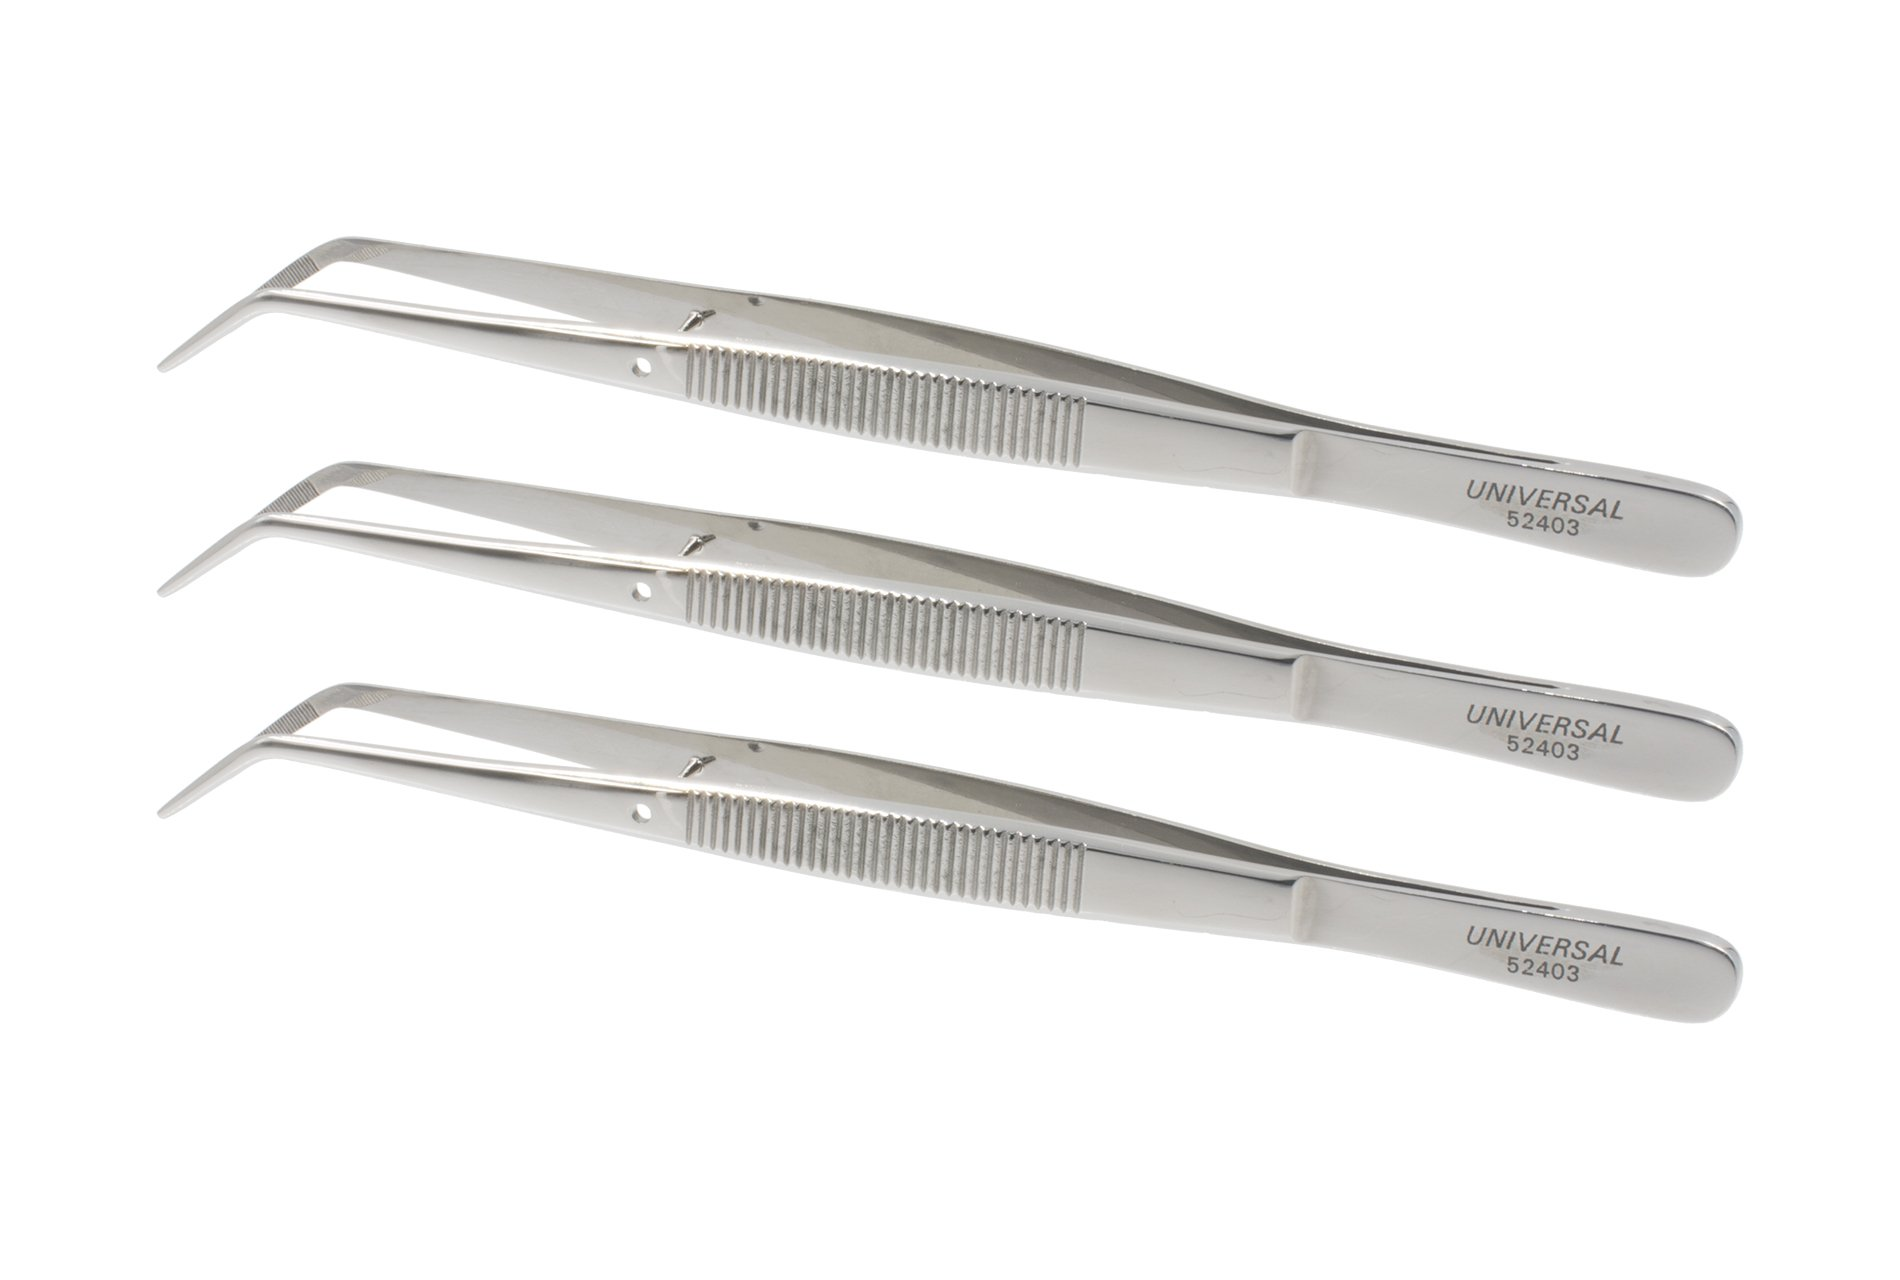 Universal 52403 Stainless Steel Heavy Pattern Precision Grade Curved Tip Tweezers / Forceps with Serrated Tip and Furrowed Handle